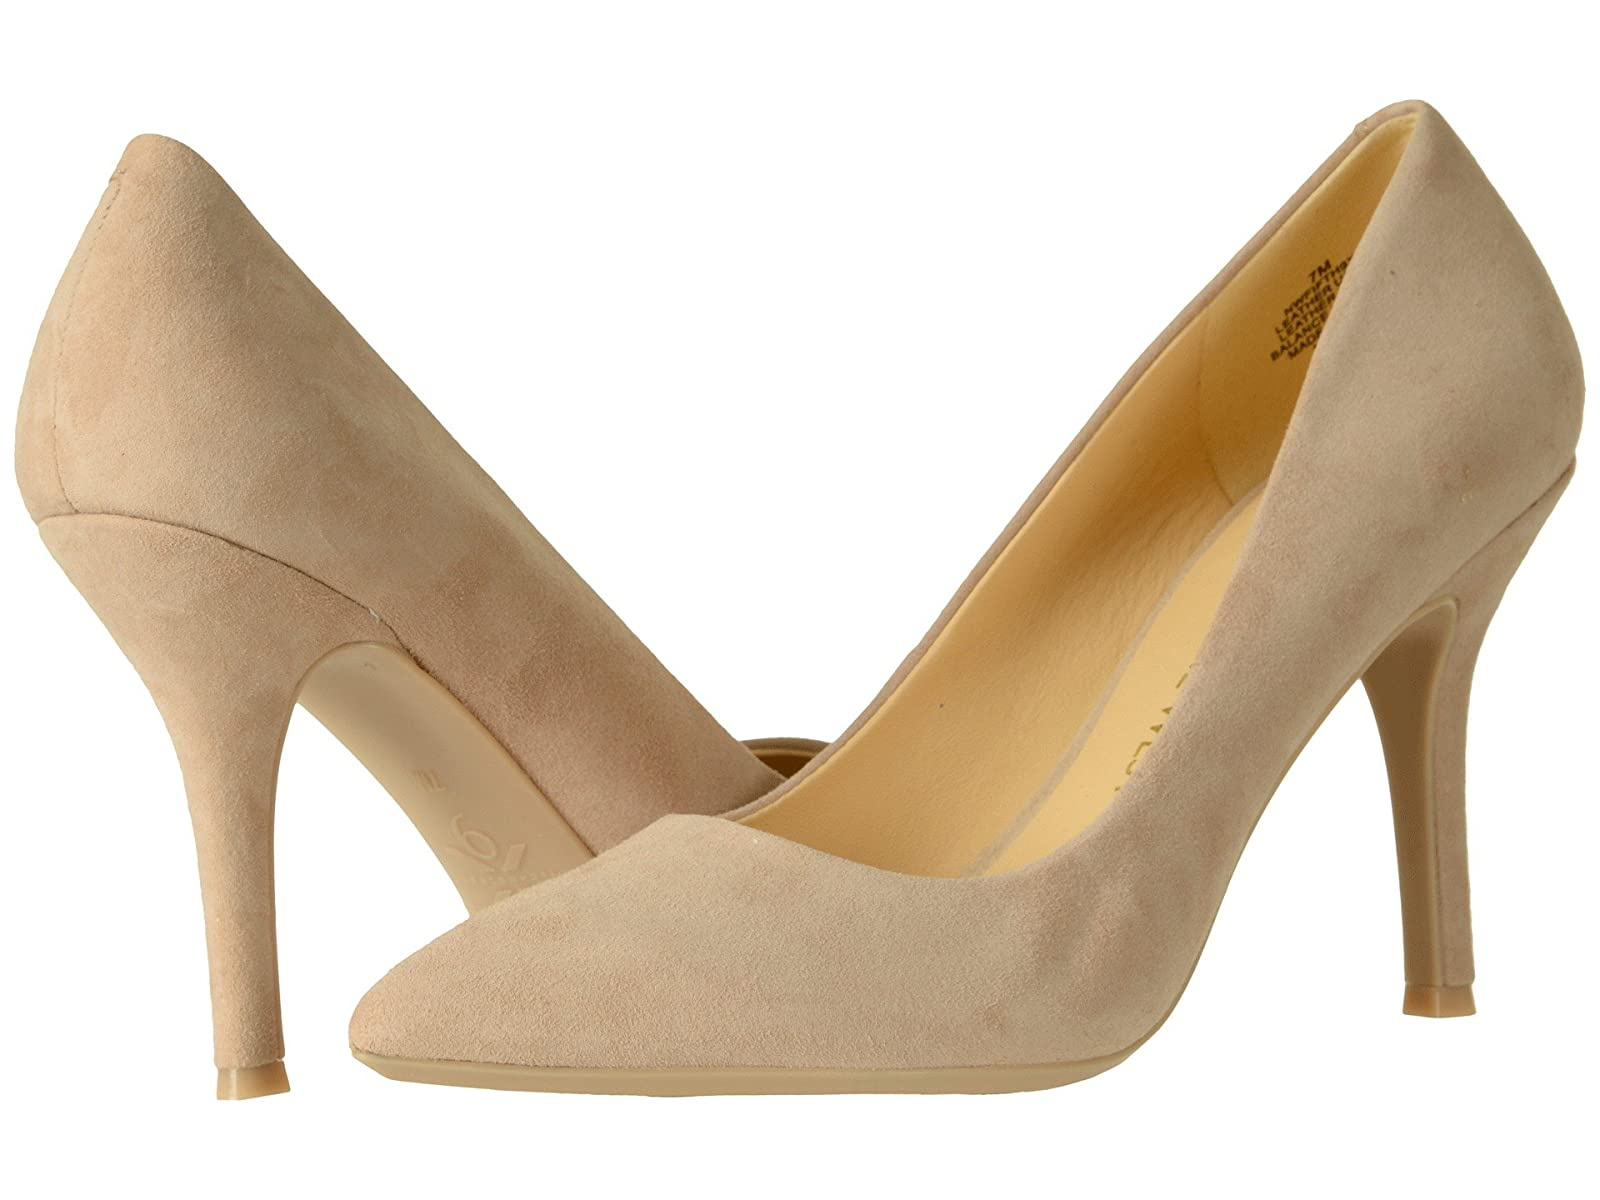 Nine West Fifth9x9 PumpCheap and distinctive eye-catching shoes